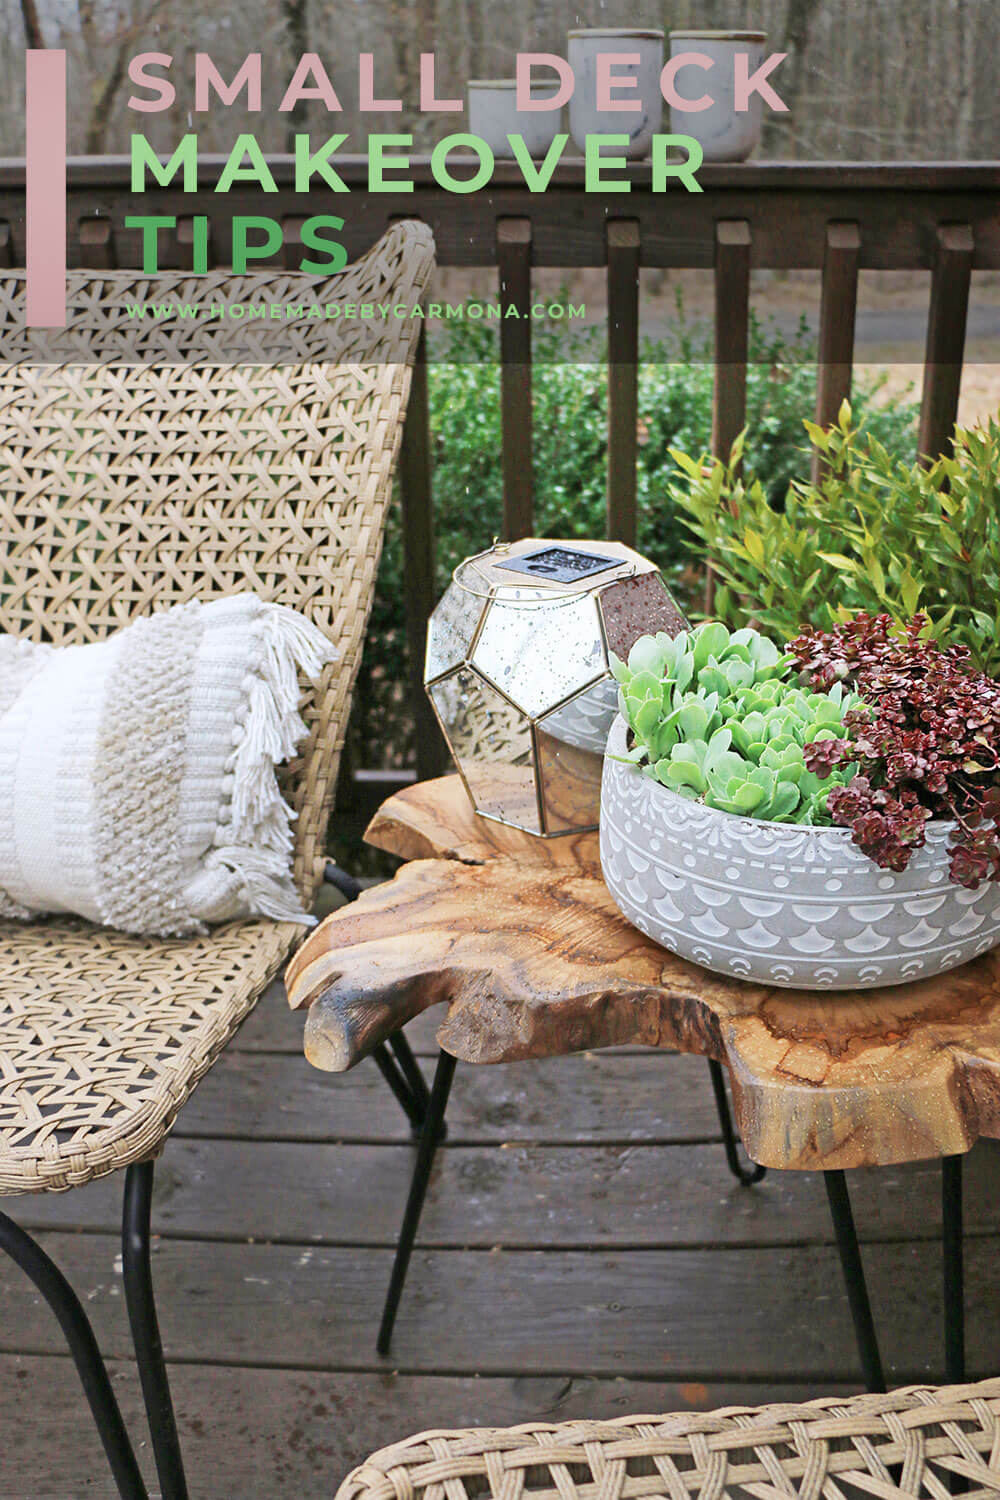 Small Deck Makeover Tips